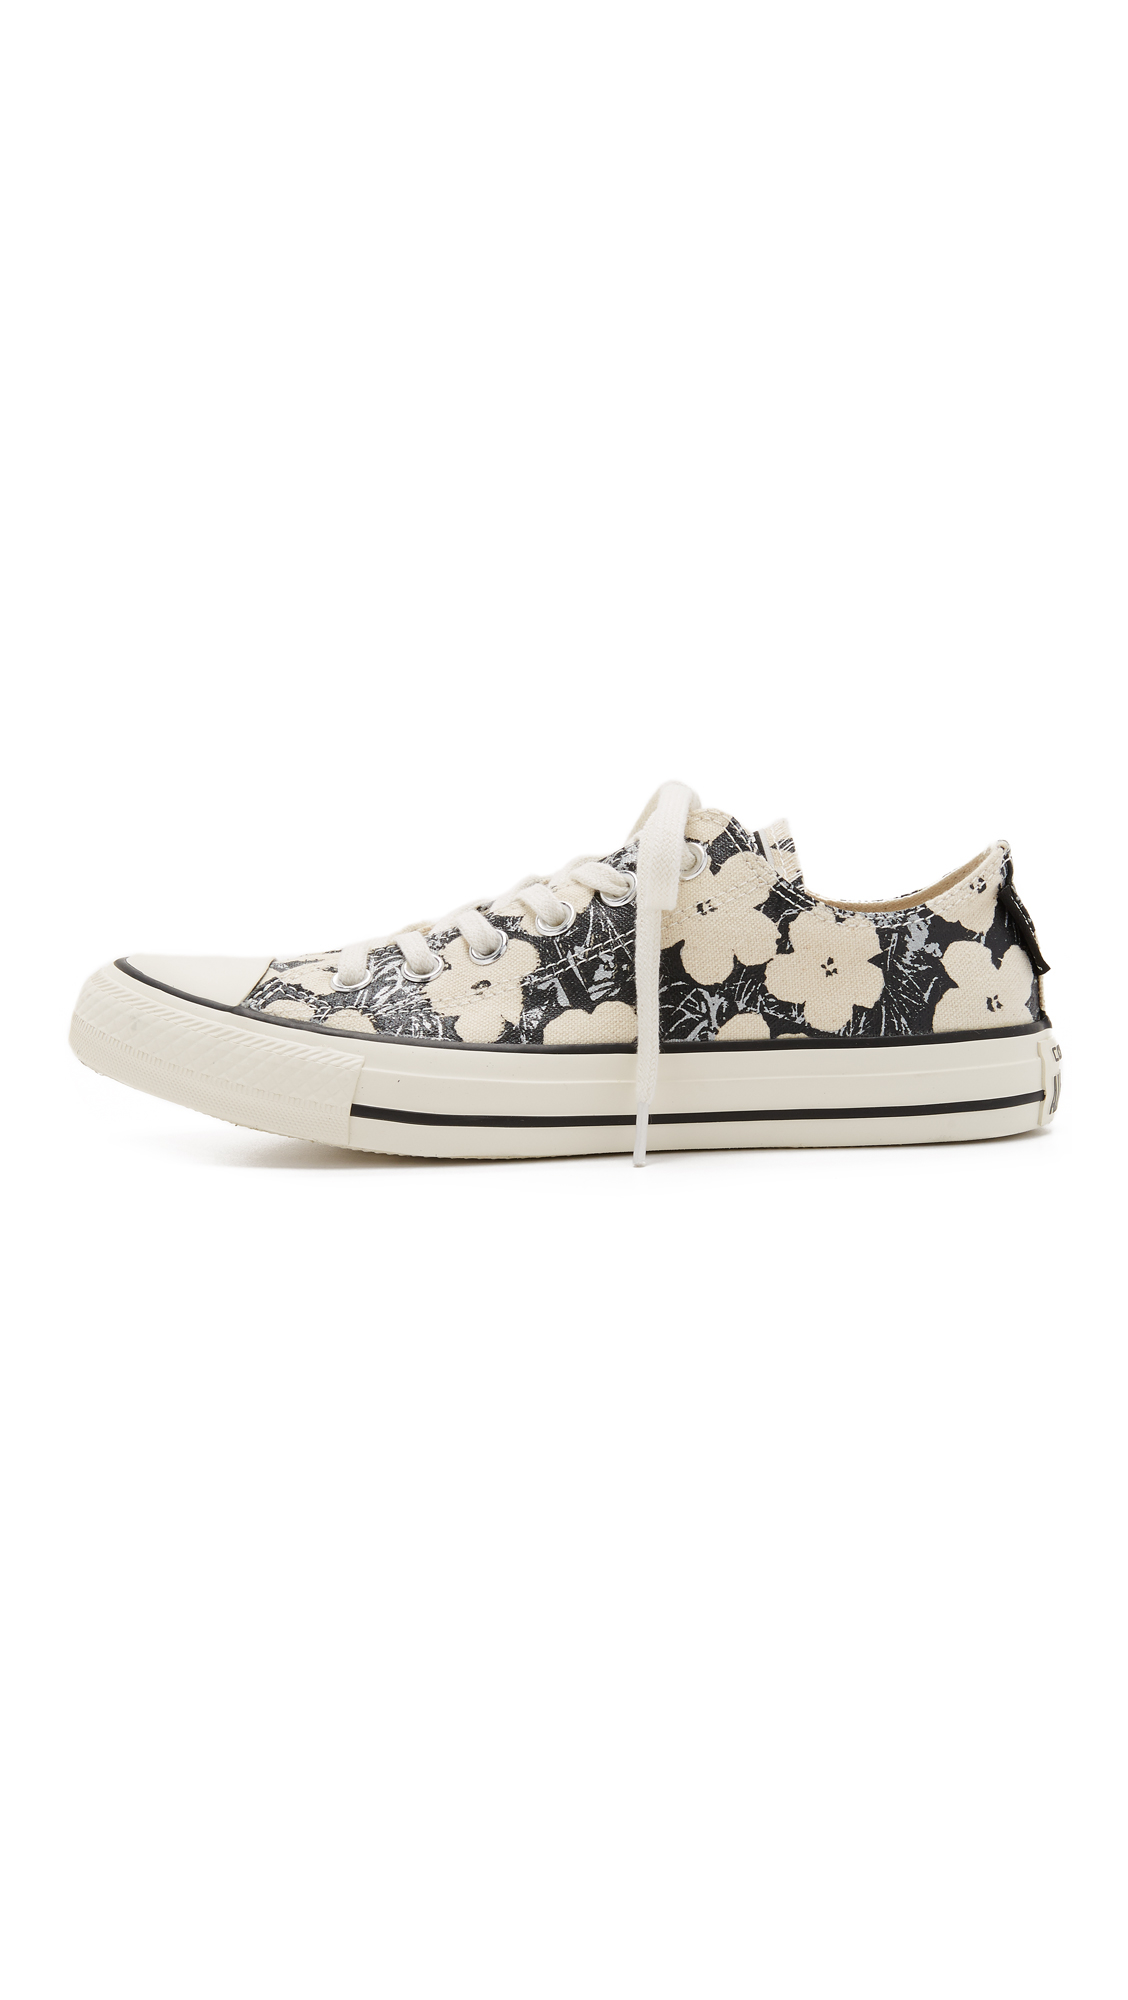 f2aaf8c484de Lyst - Converse Chuck Taylor All Star X Andy Warhol Sneakers ...